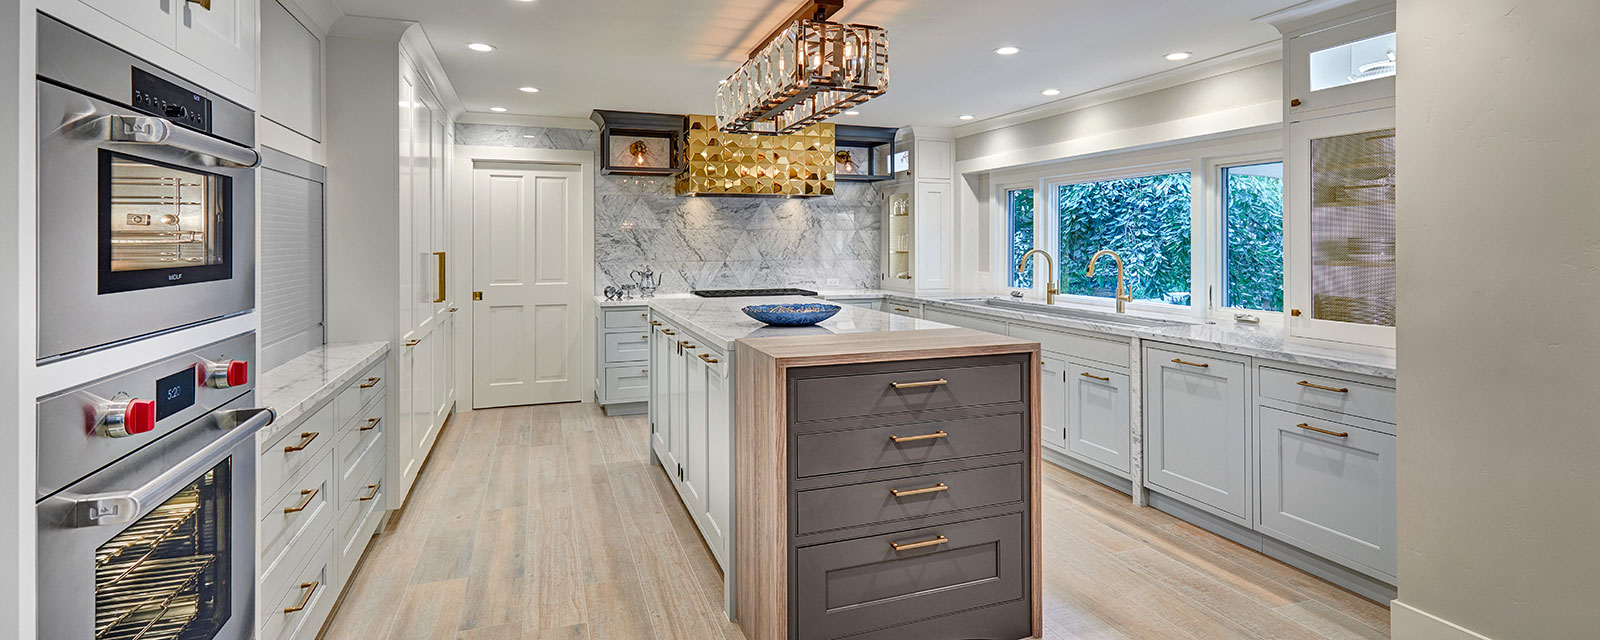 ct kitchen white warm remodeling and remodel design homepage showrooms ma ri gallery bath